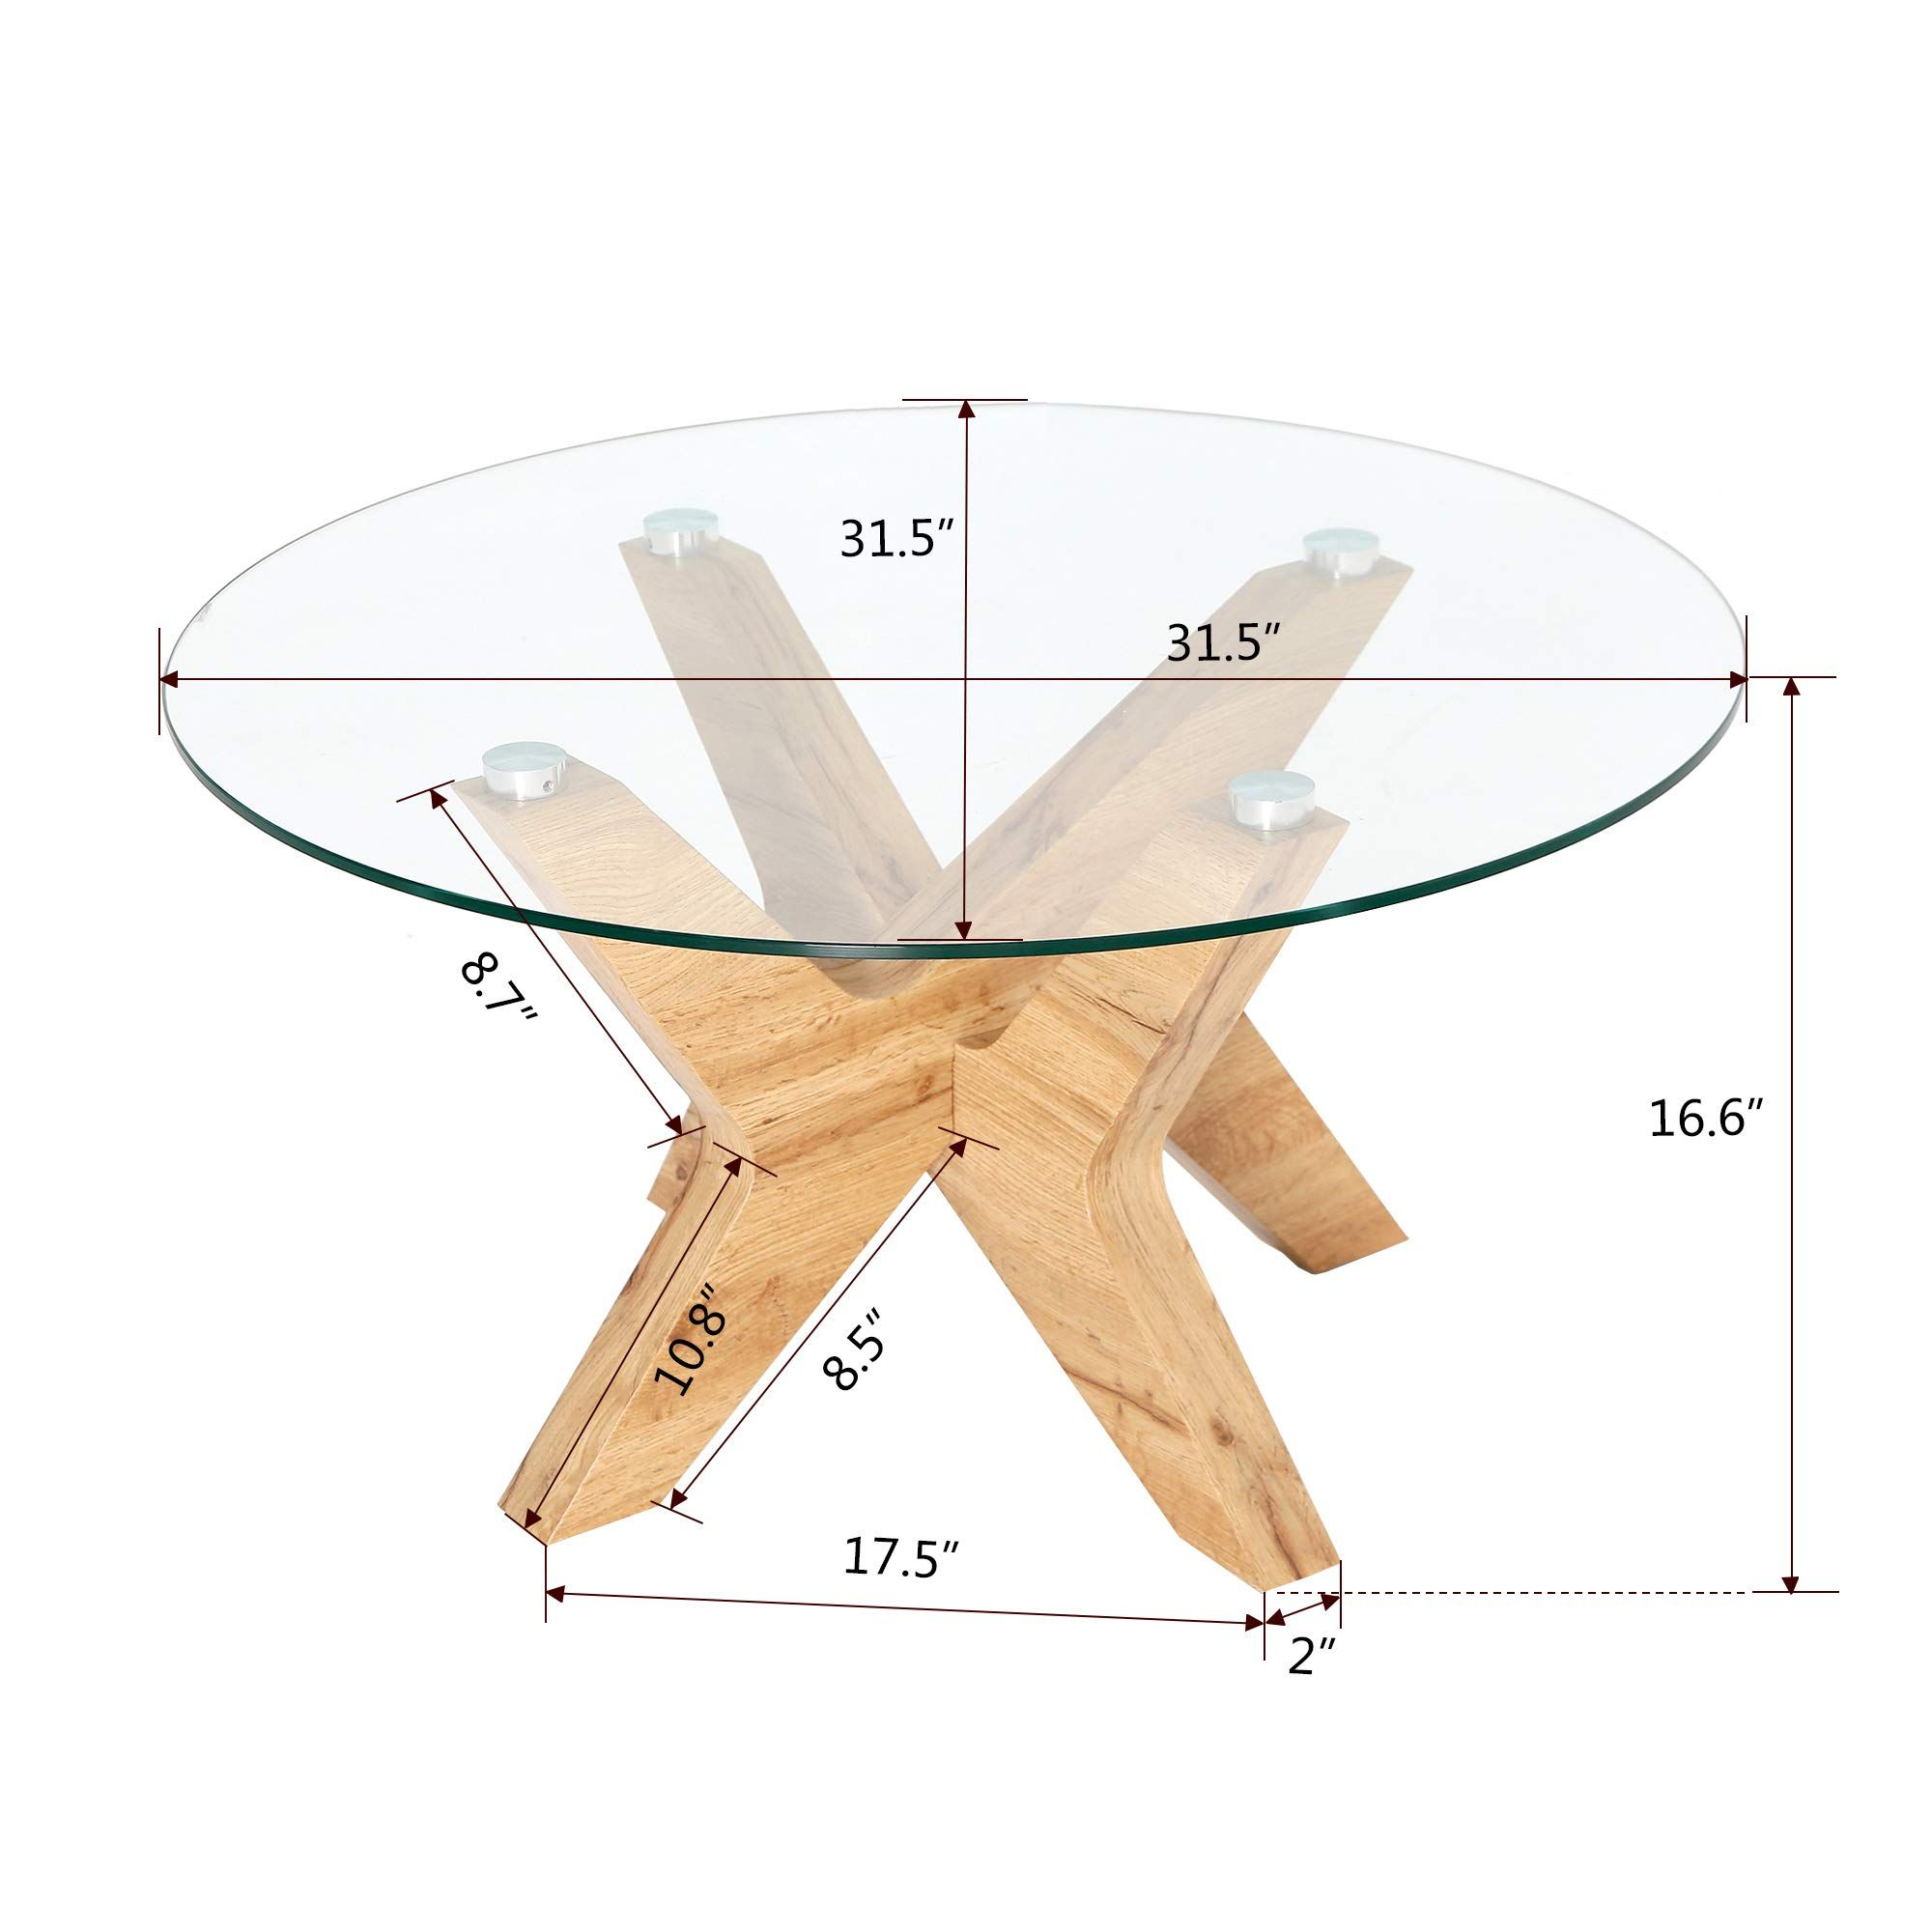 Ivinta Glass Coffee Table Round Industrial Design With Wood Frame Glass Coffee Tables Living Room Living Room Coffee Table Round Glass Coffee Table Living Room [ 2000 x 2000 Pixel ]